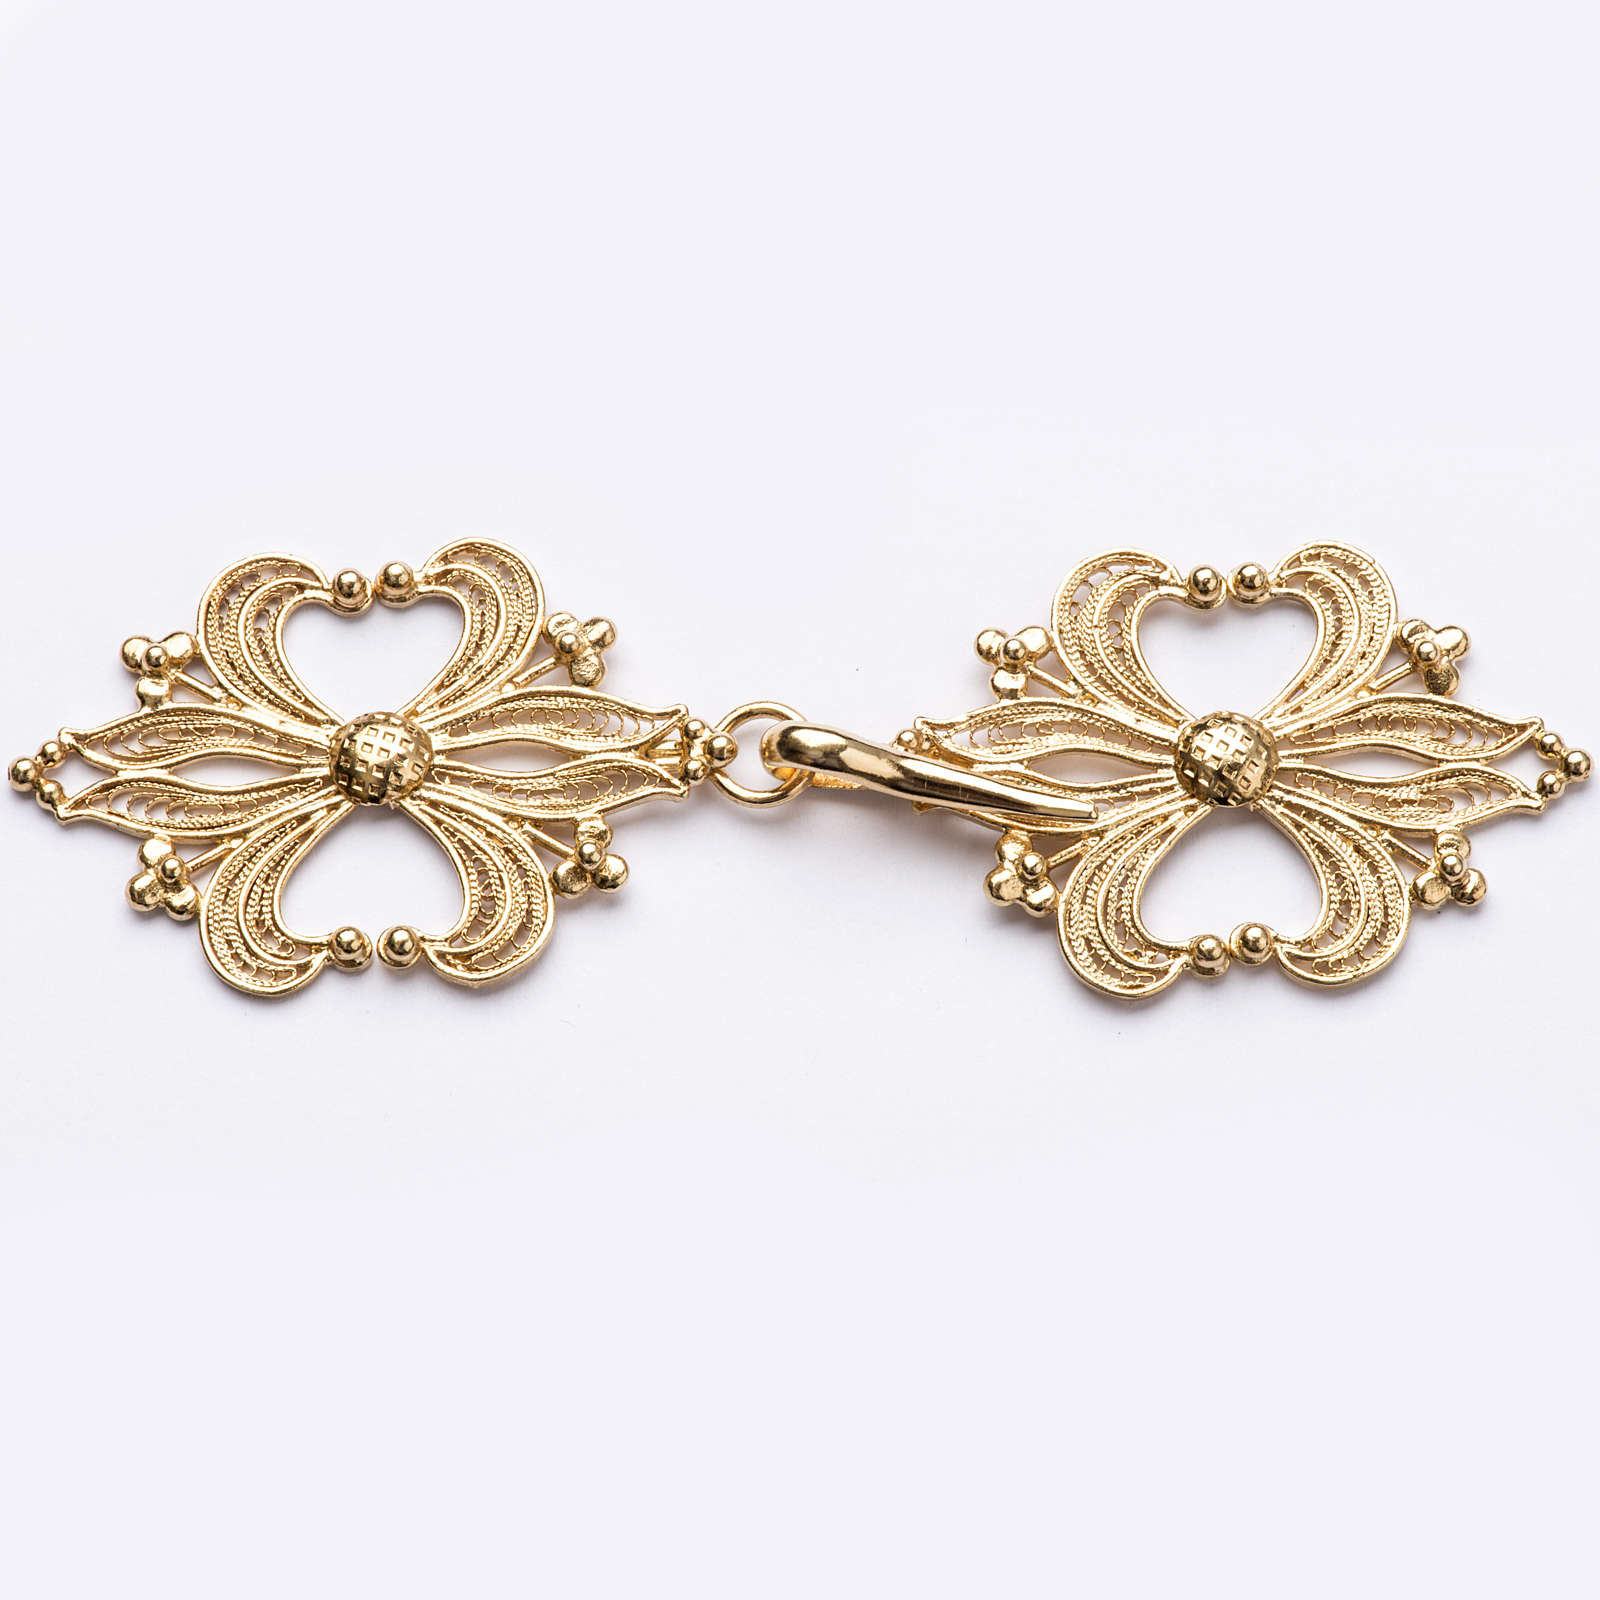 Cope Clasp in golden silver 800 filigree 4